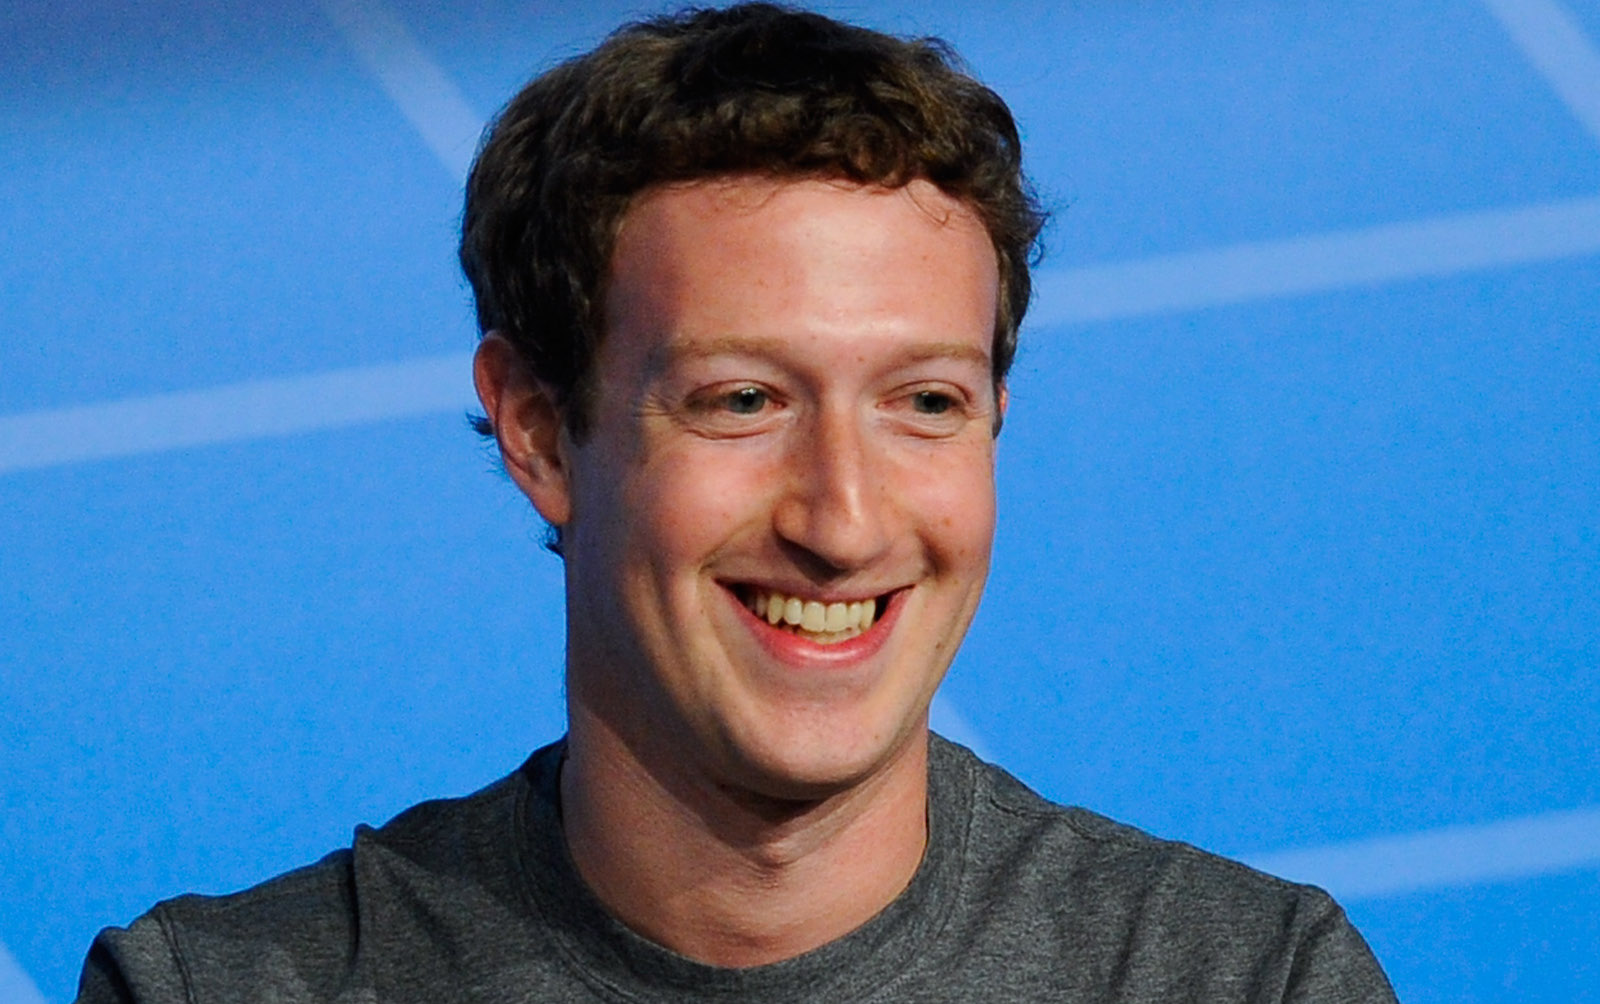 The One Thing Mark Zuckerberg Does Every Morning That Can Eliminate Anxiety at Work